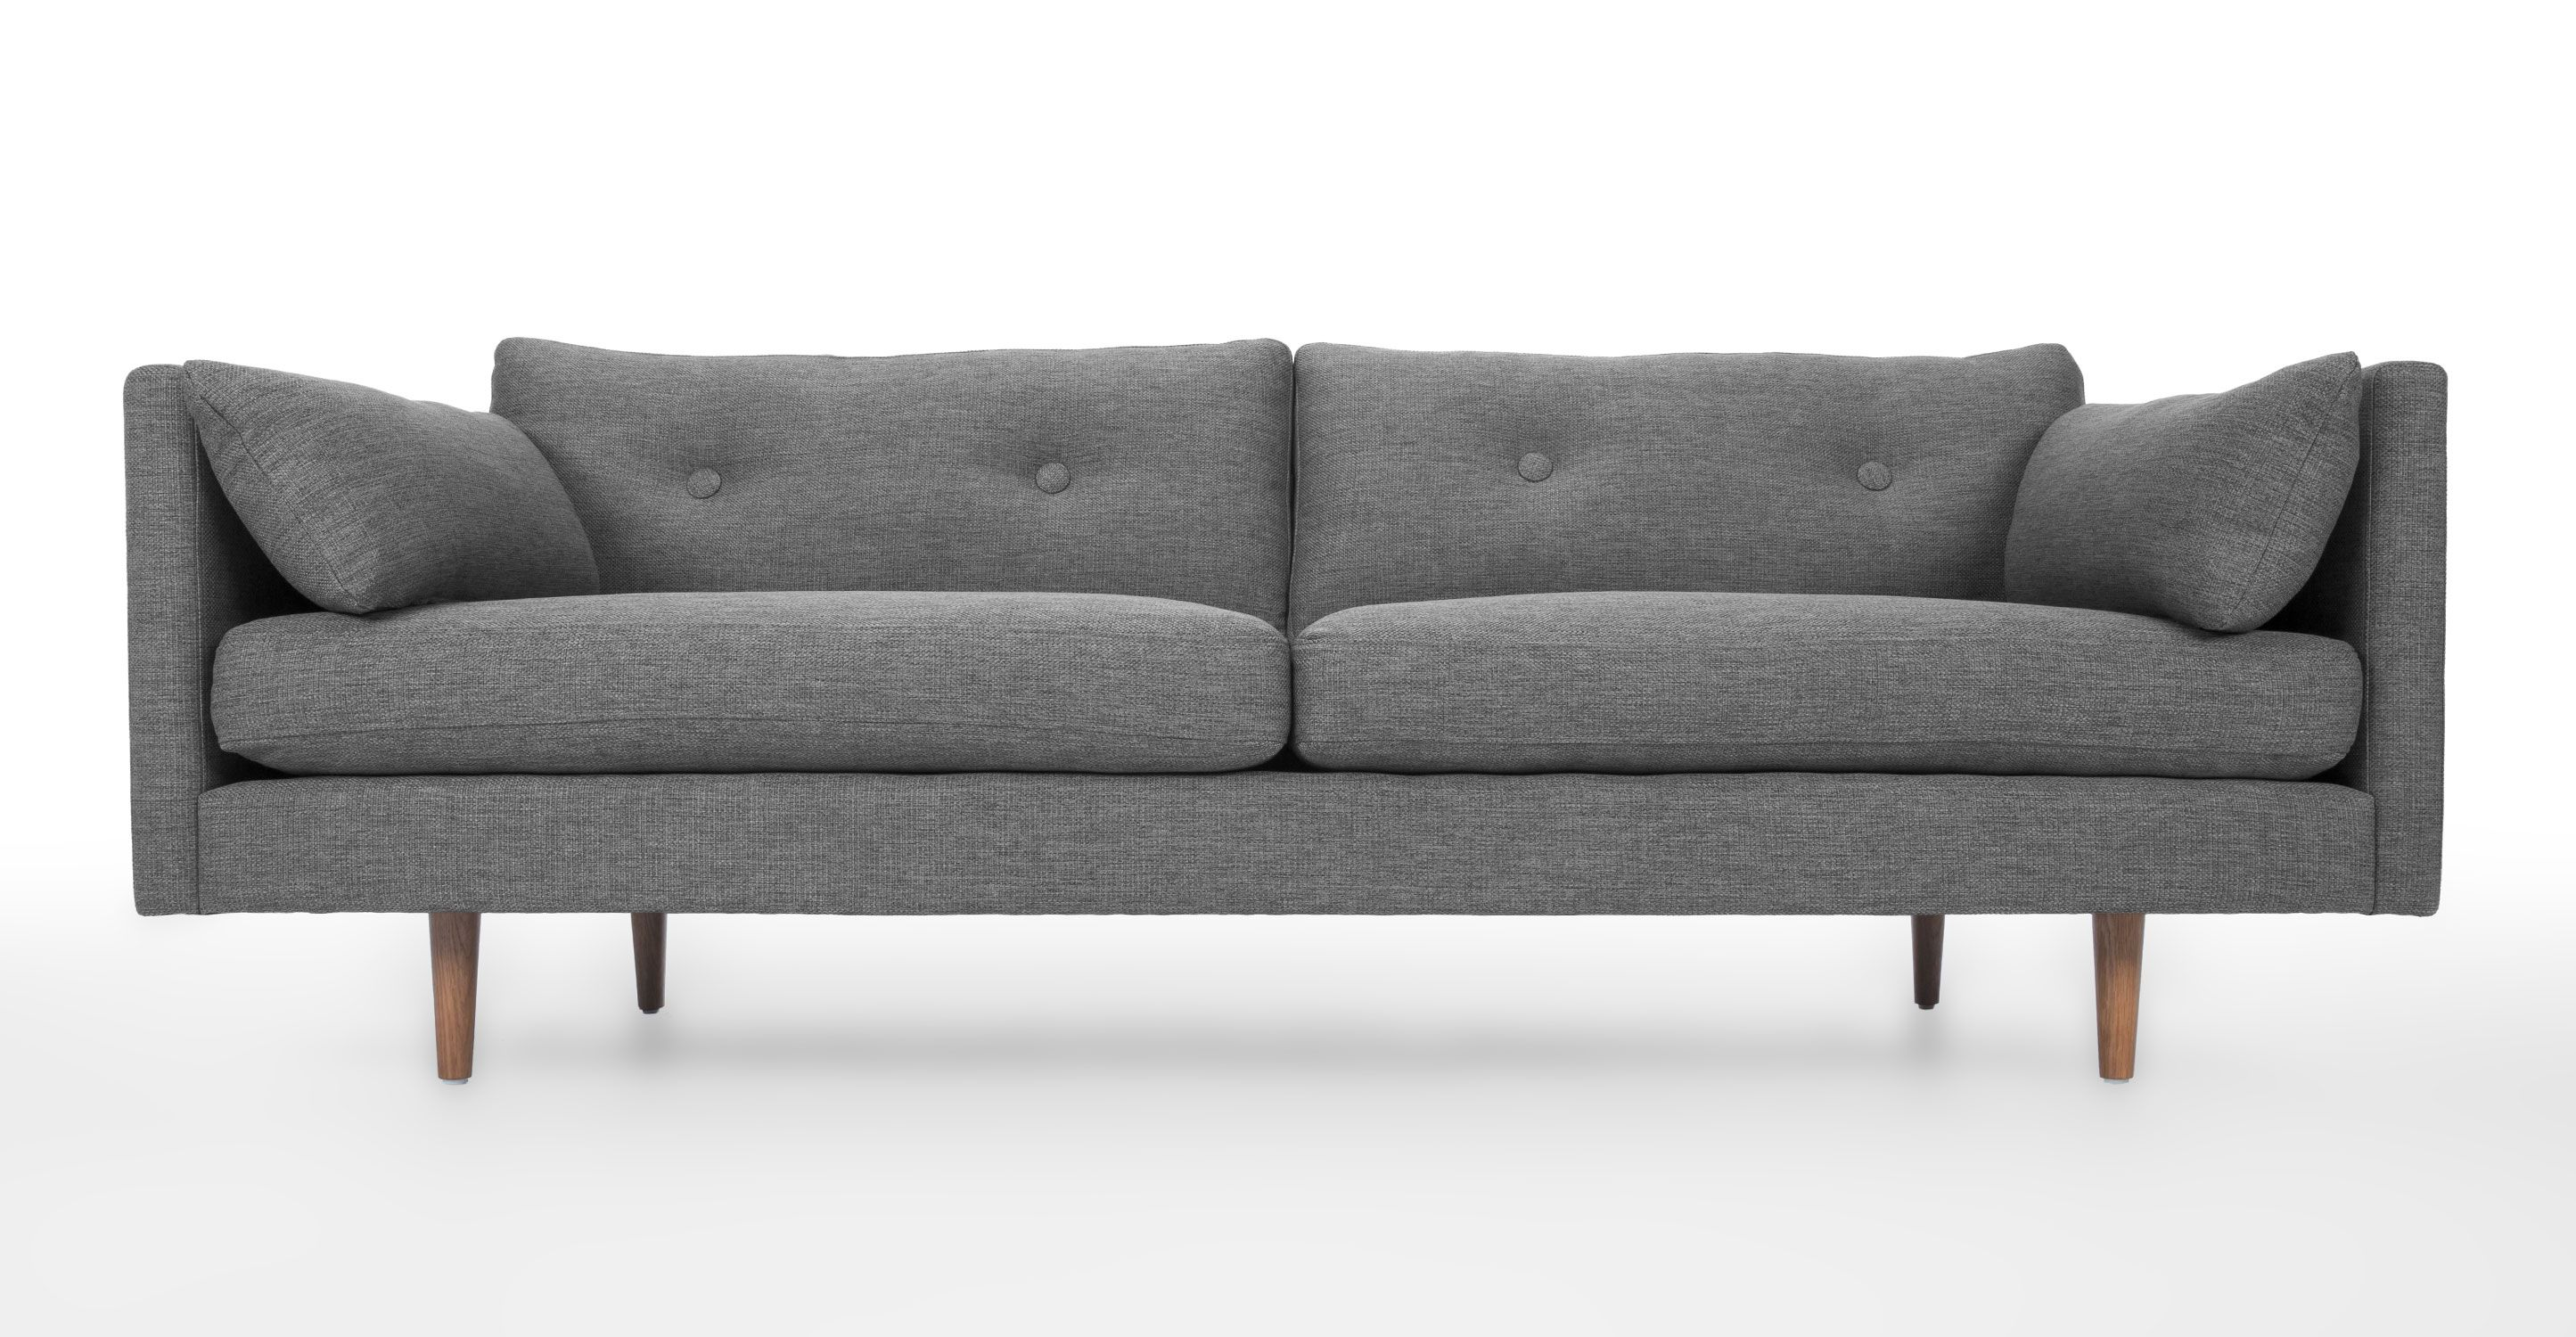 Gray Sofa Tufted Button Back Solid Wood Legs